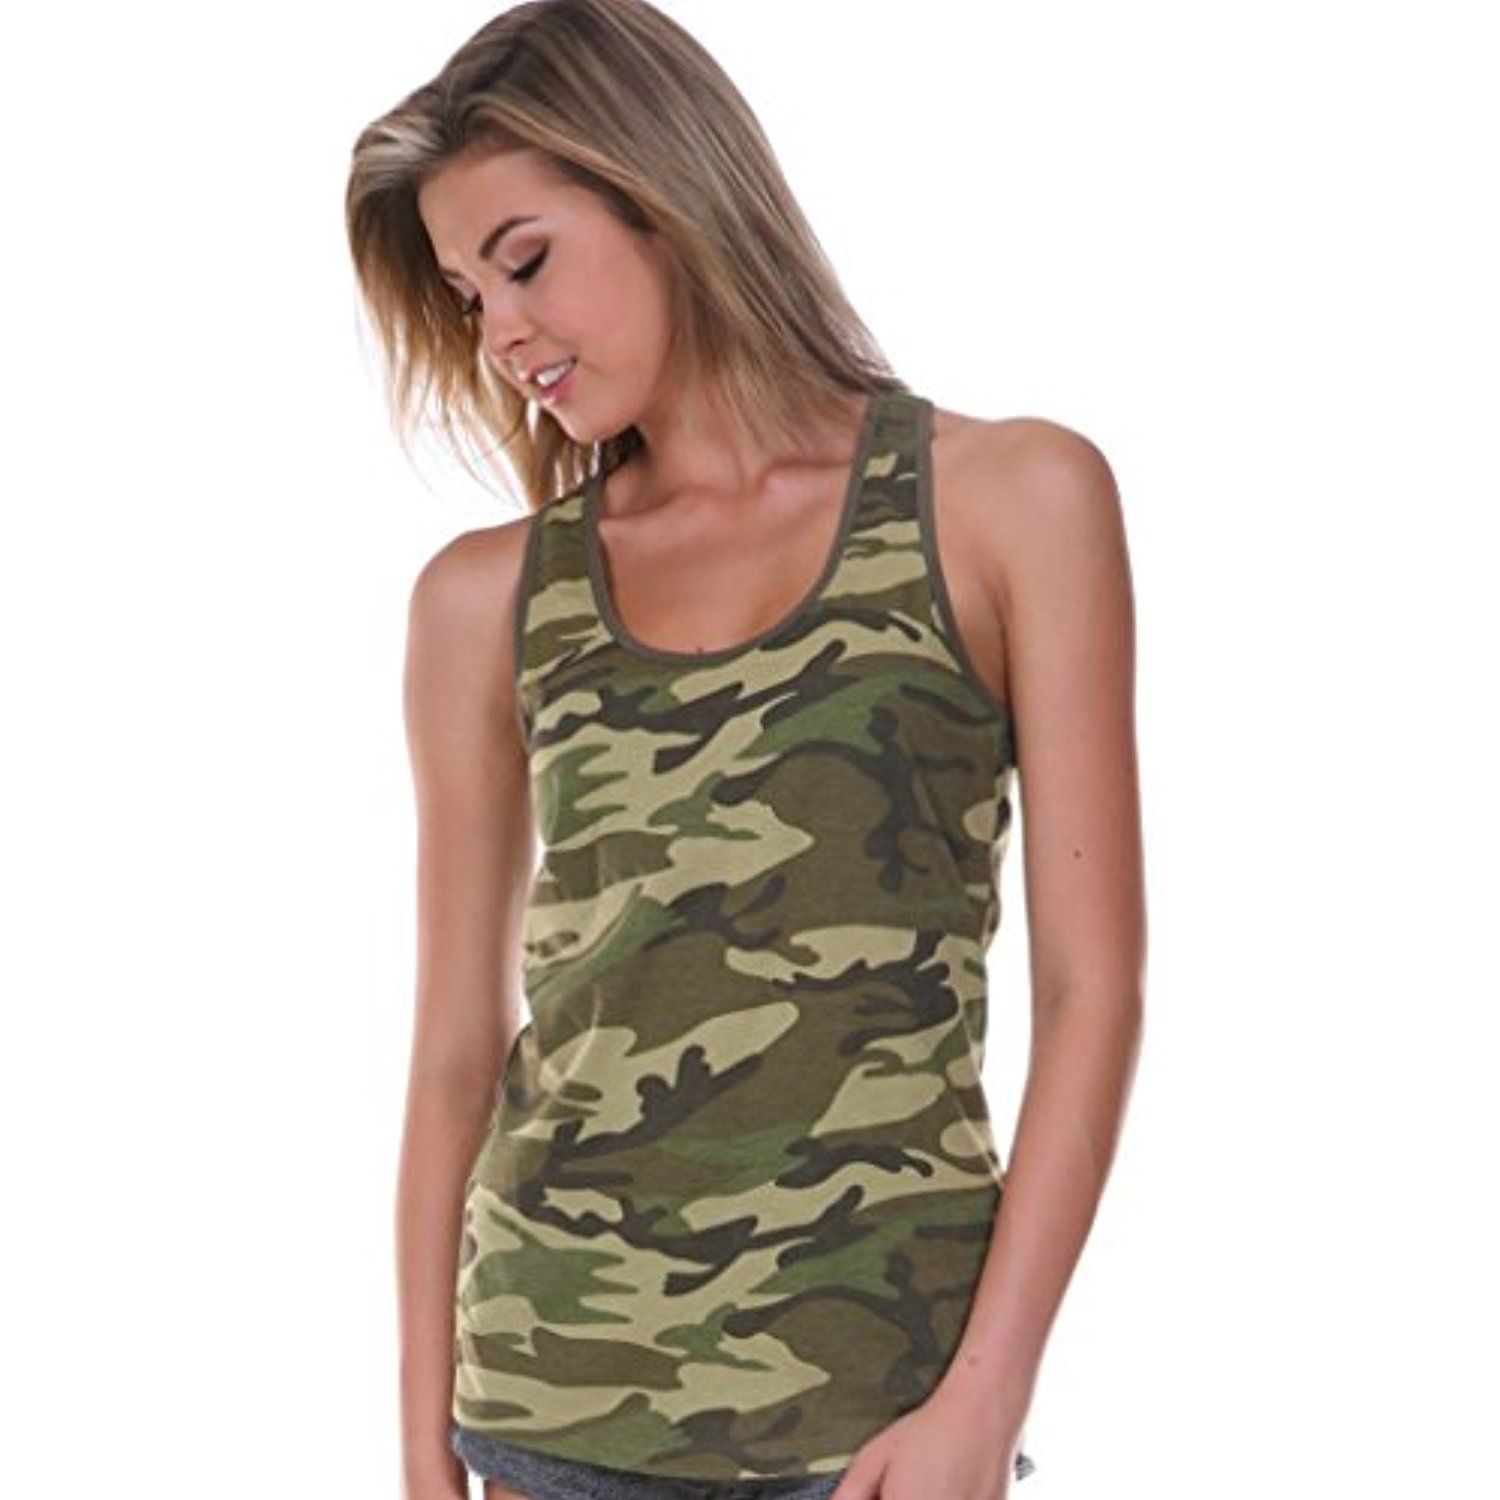 de02ad0bd4169 Juniors Camouflage Racerback Cotton Poly Tank Top    Click on the image for  additional details. (This is an affiliate link)  Clothing